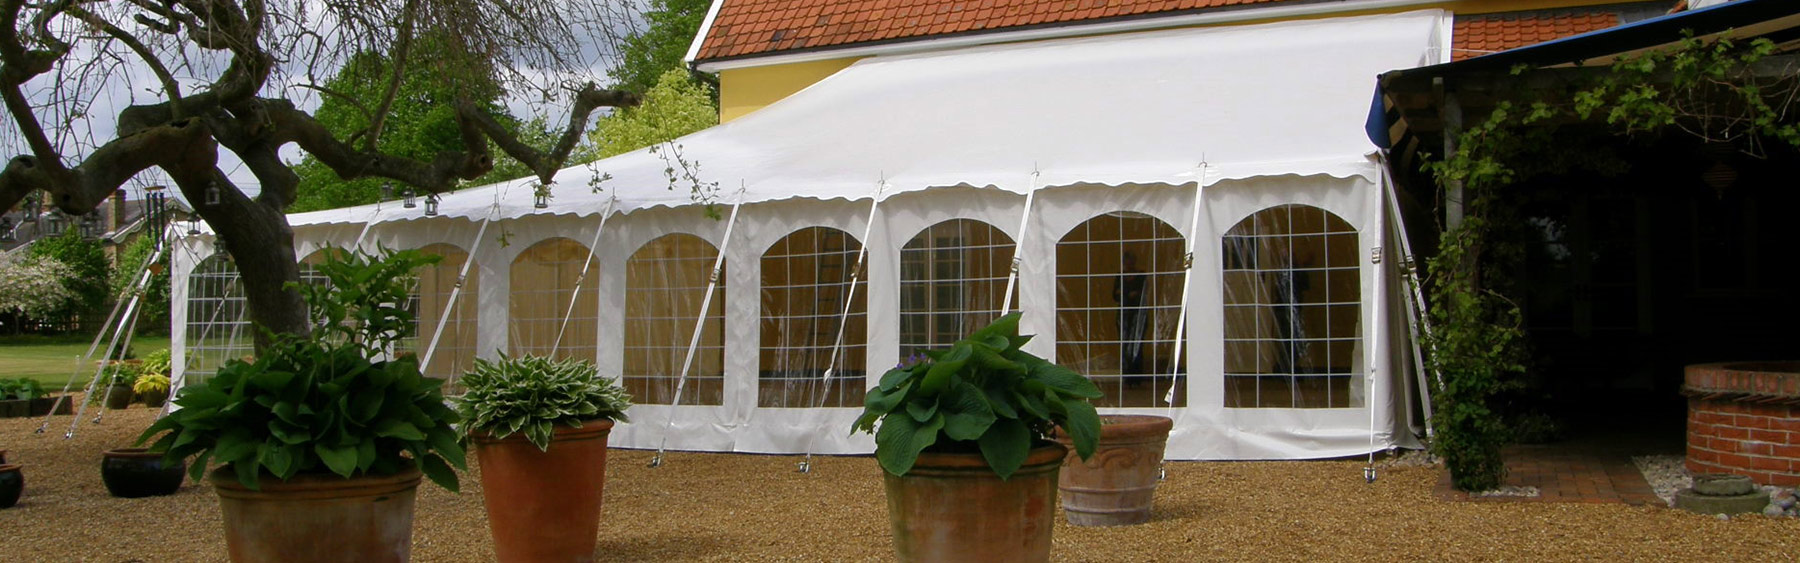 Marquees For Pubs and Hotels